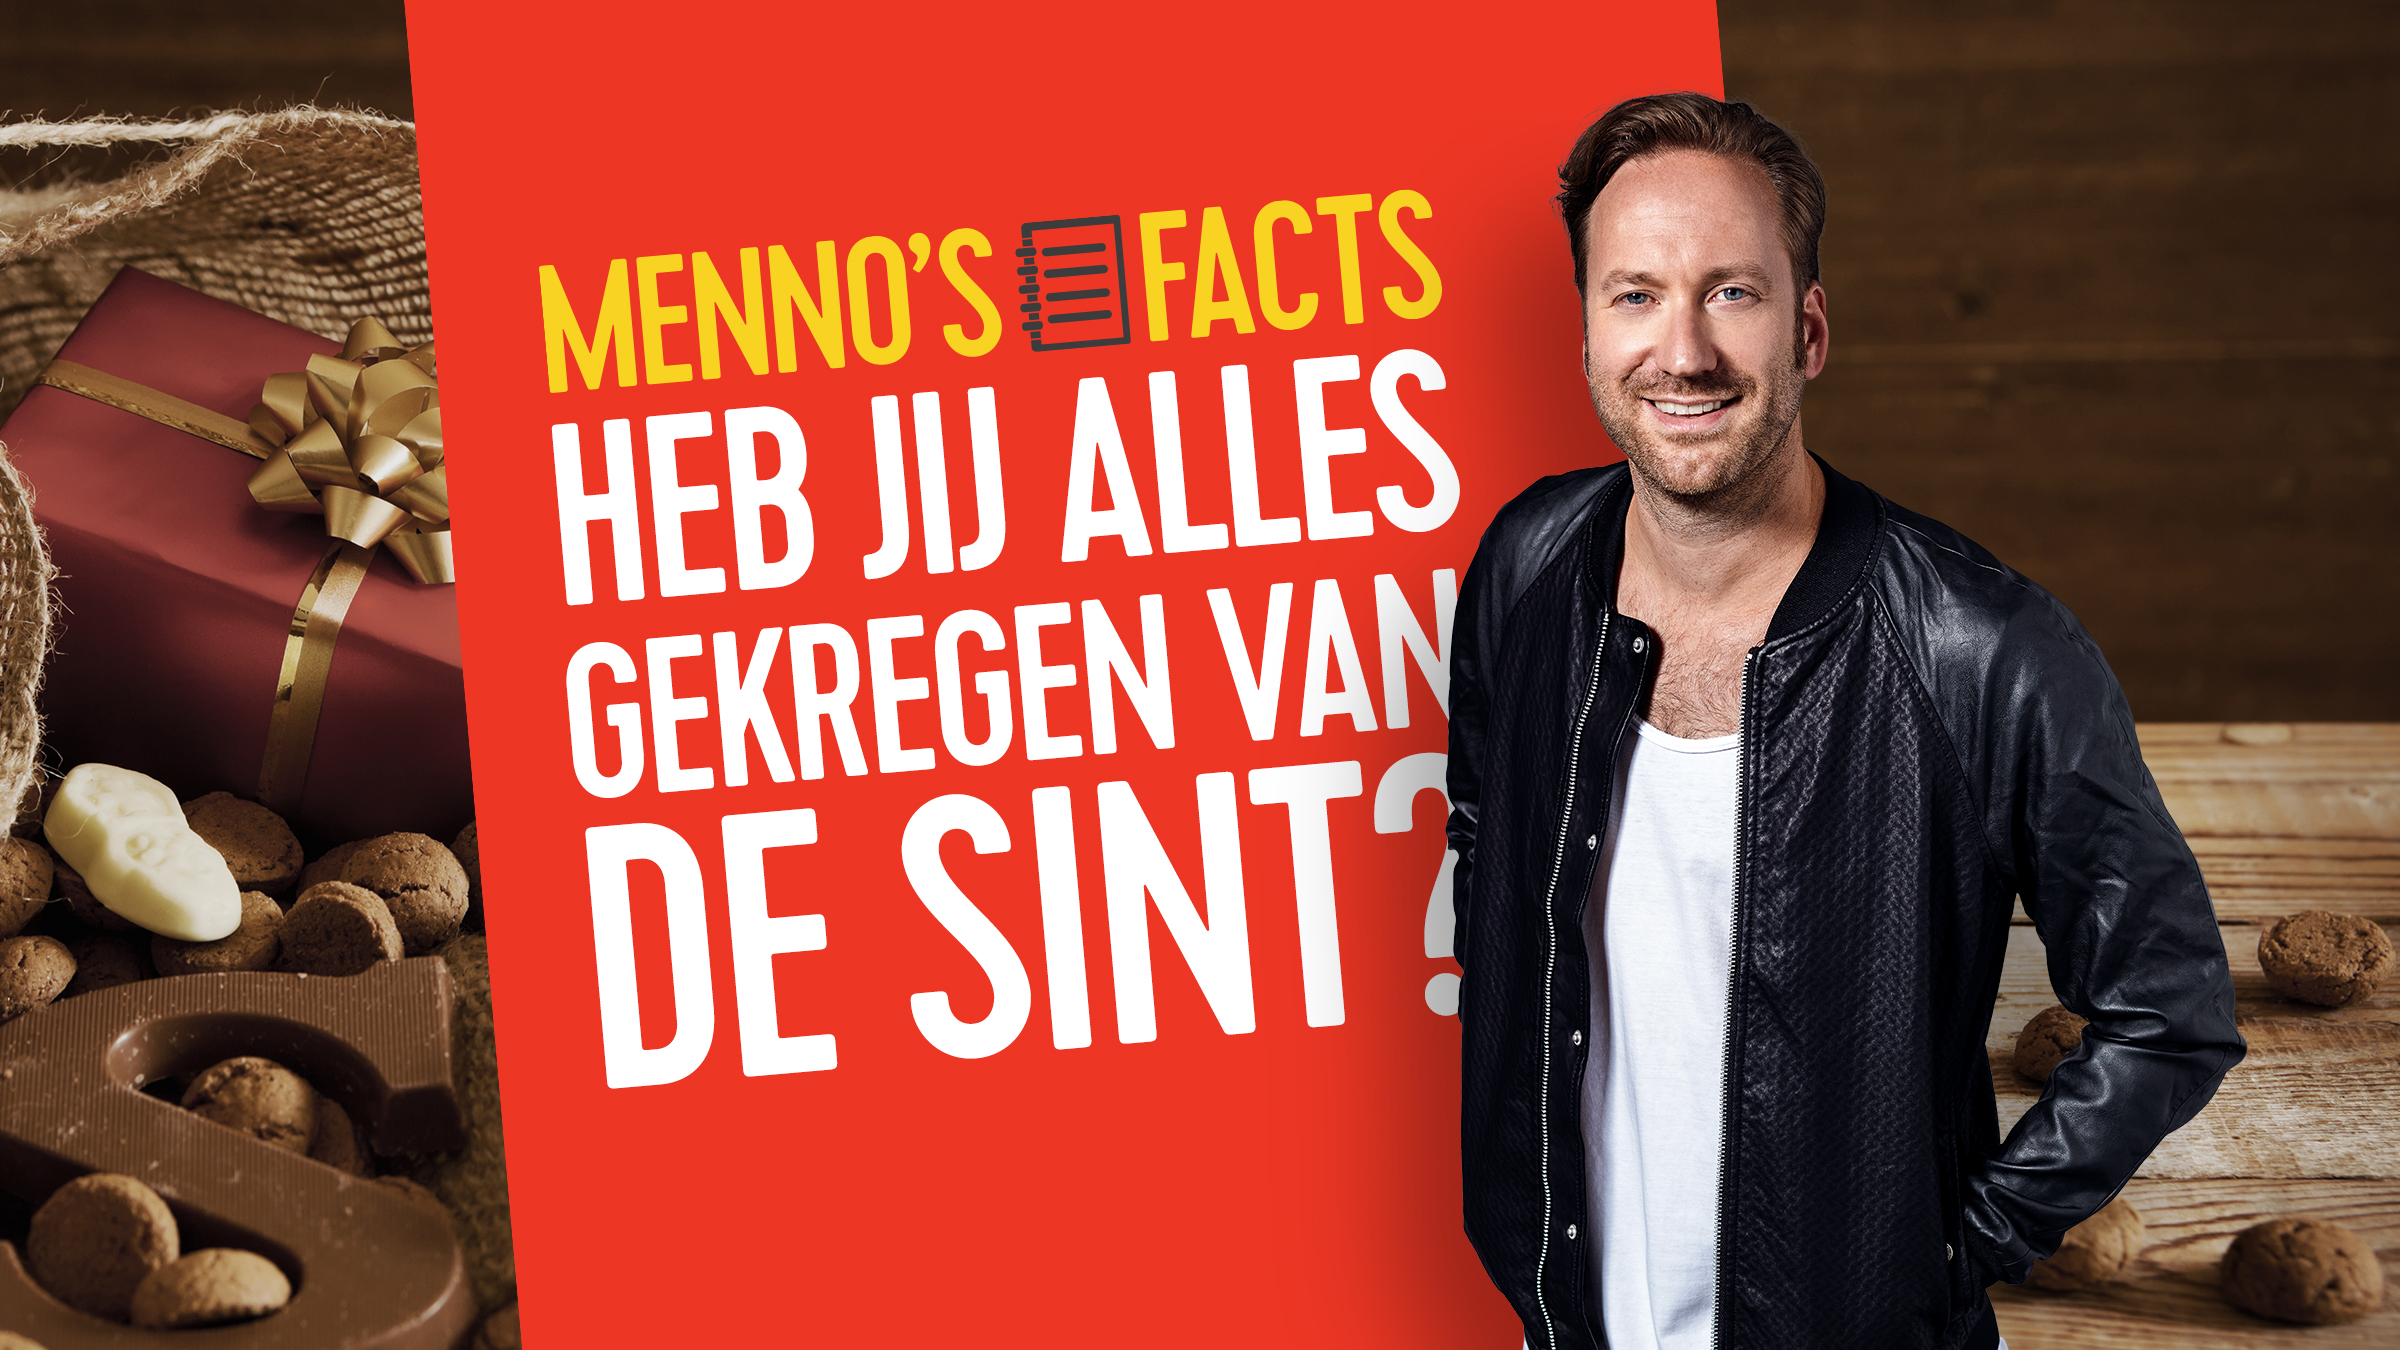 Sint teaser basis mennosfacts17